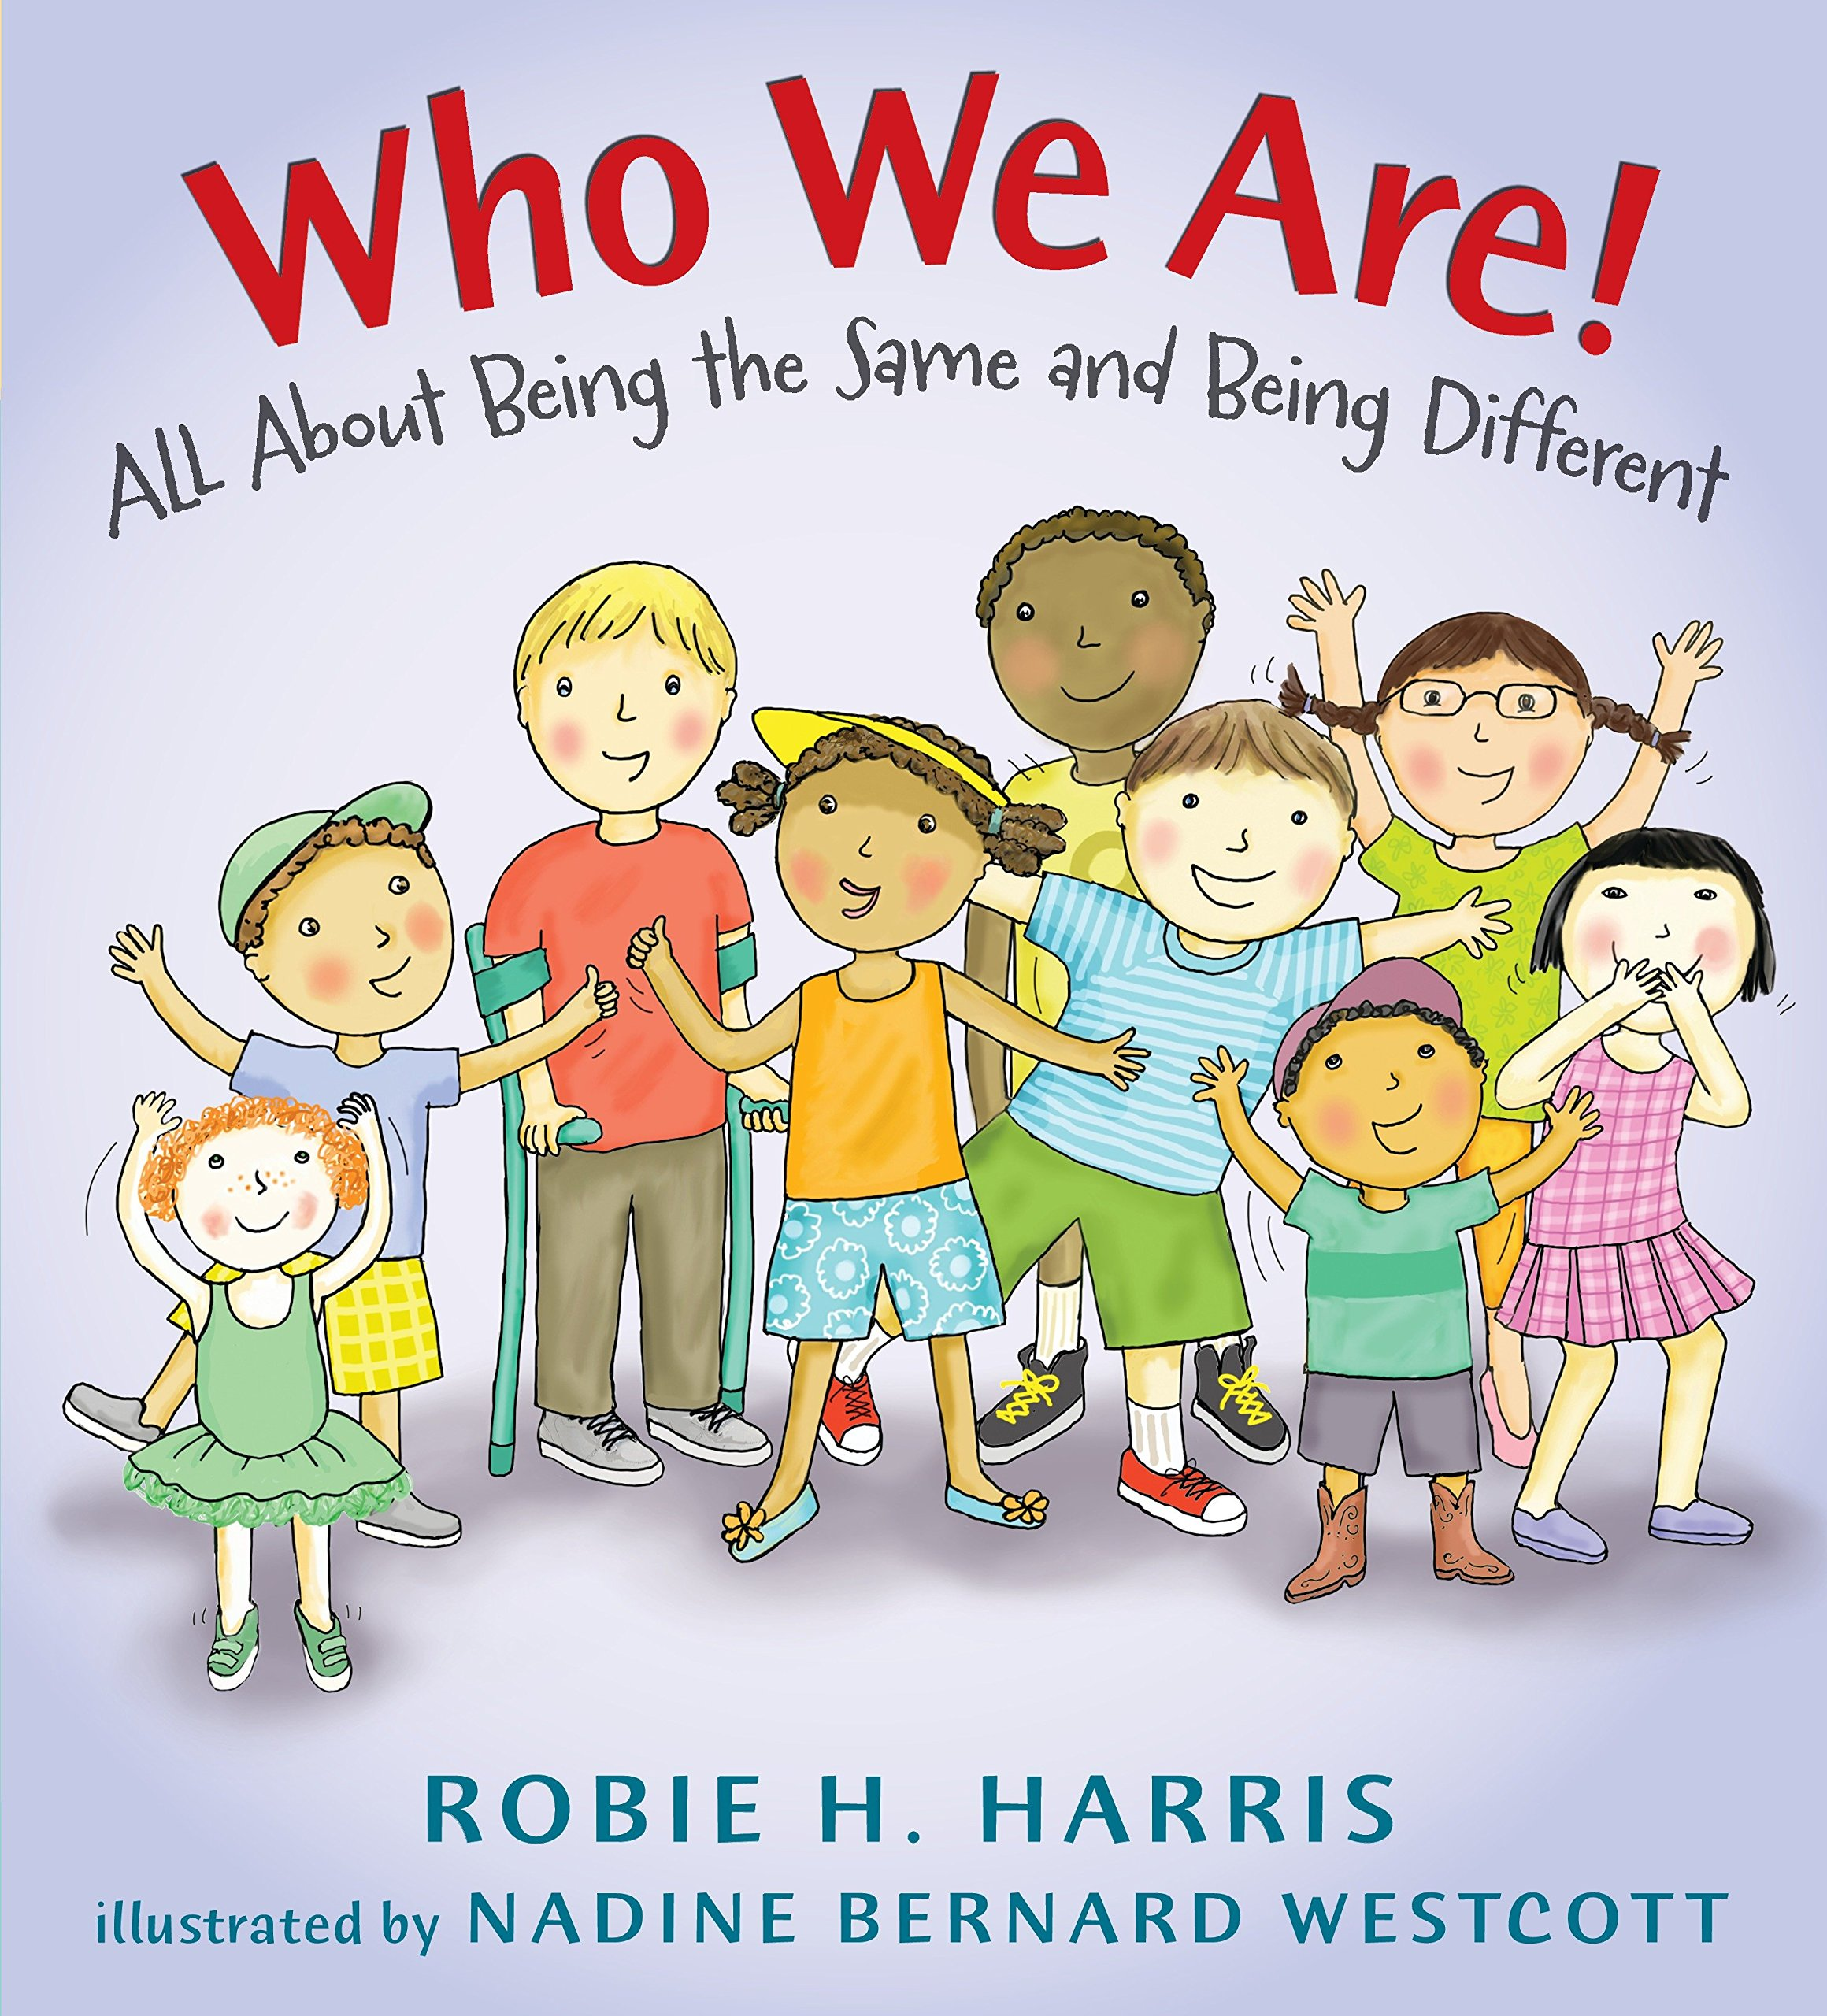 Who We Are!: All About Being the Same and Being Different (Let's Talk about You and Me)